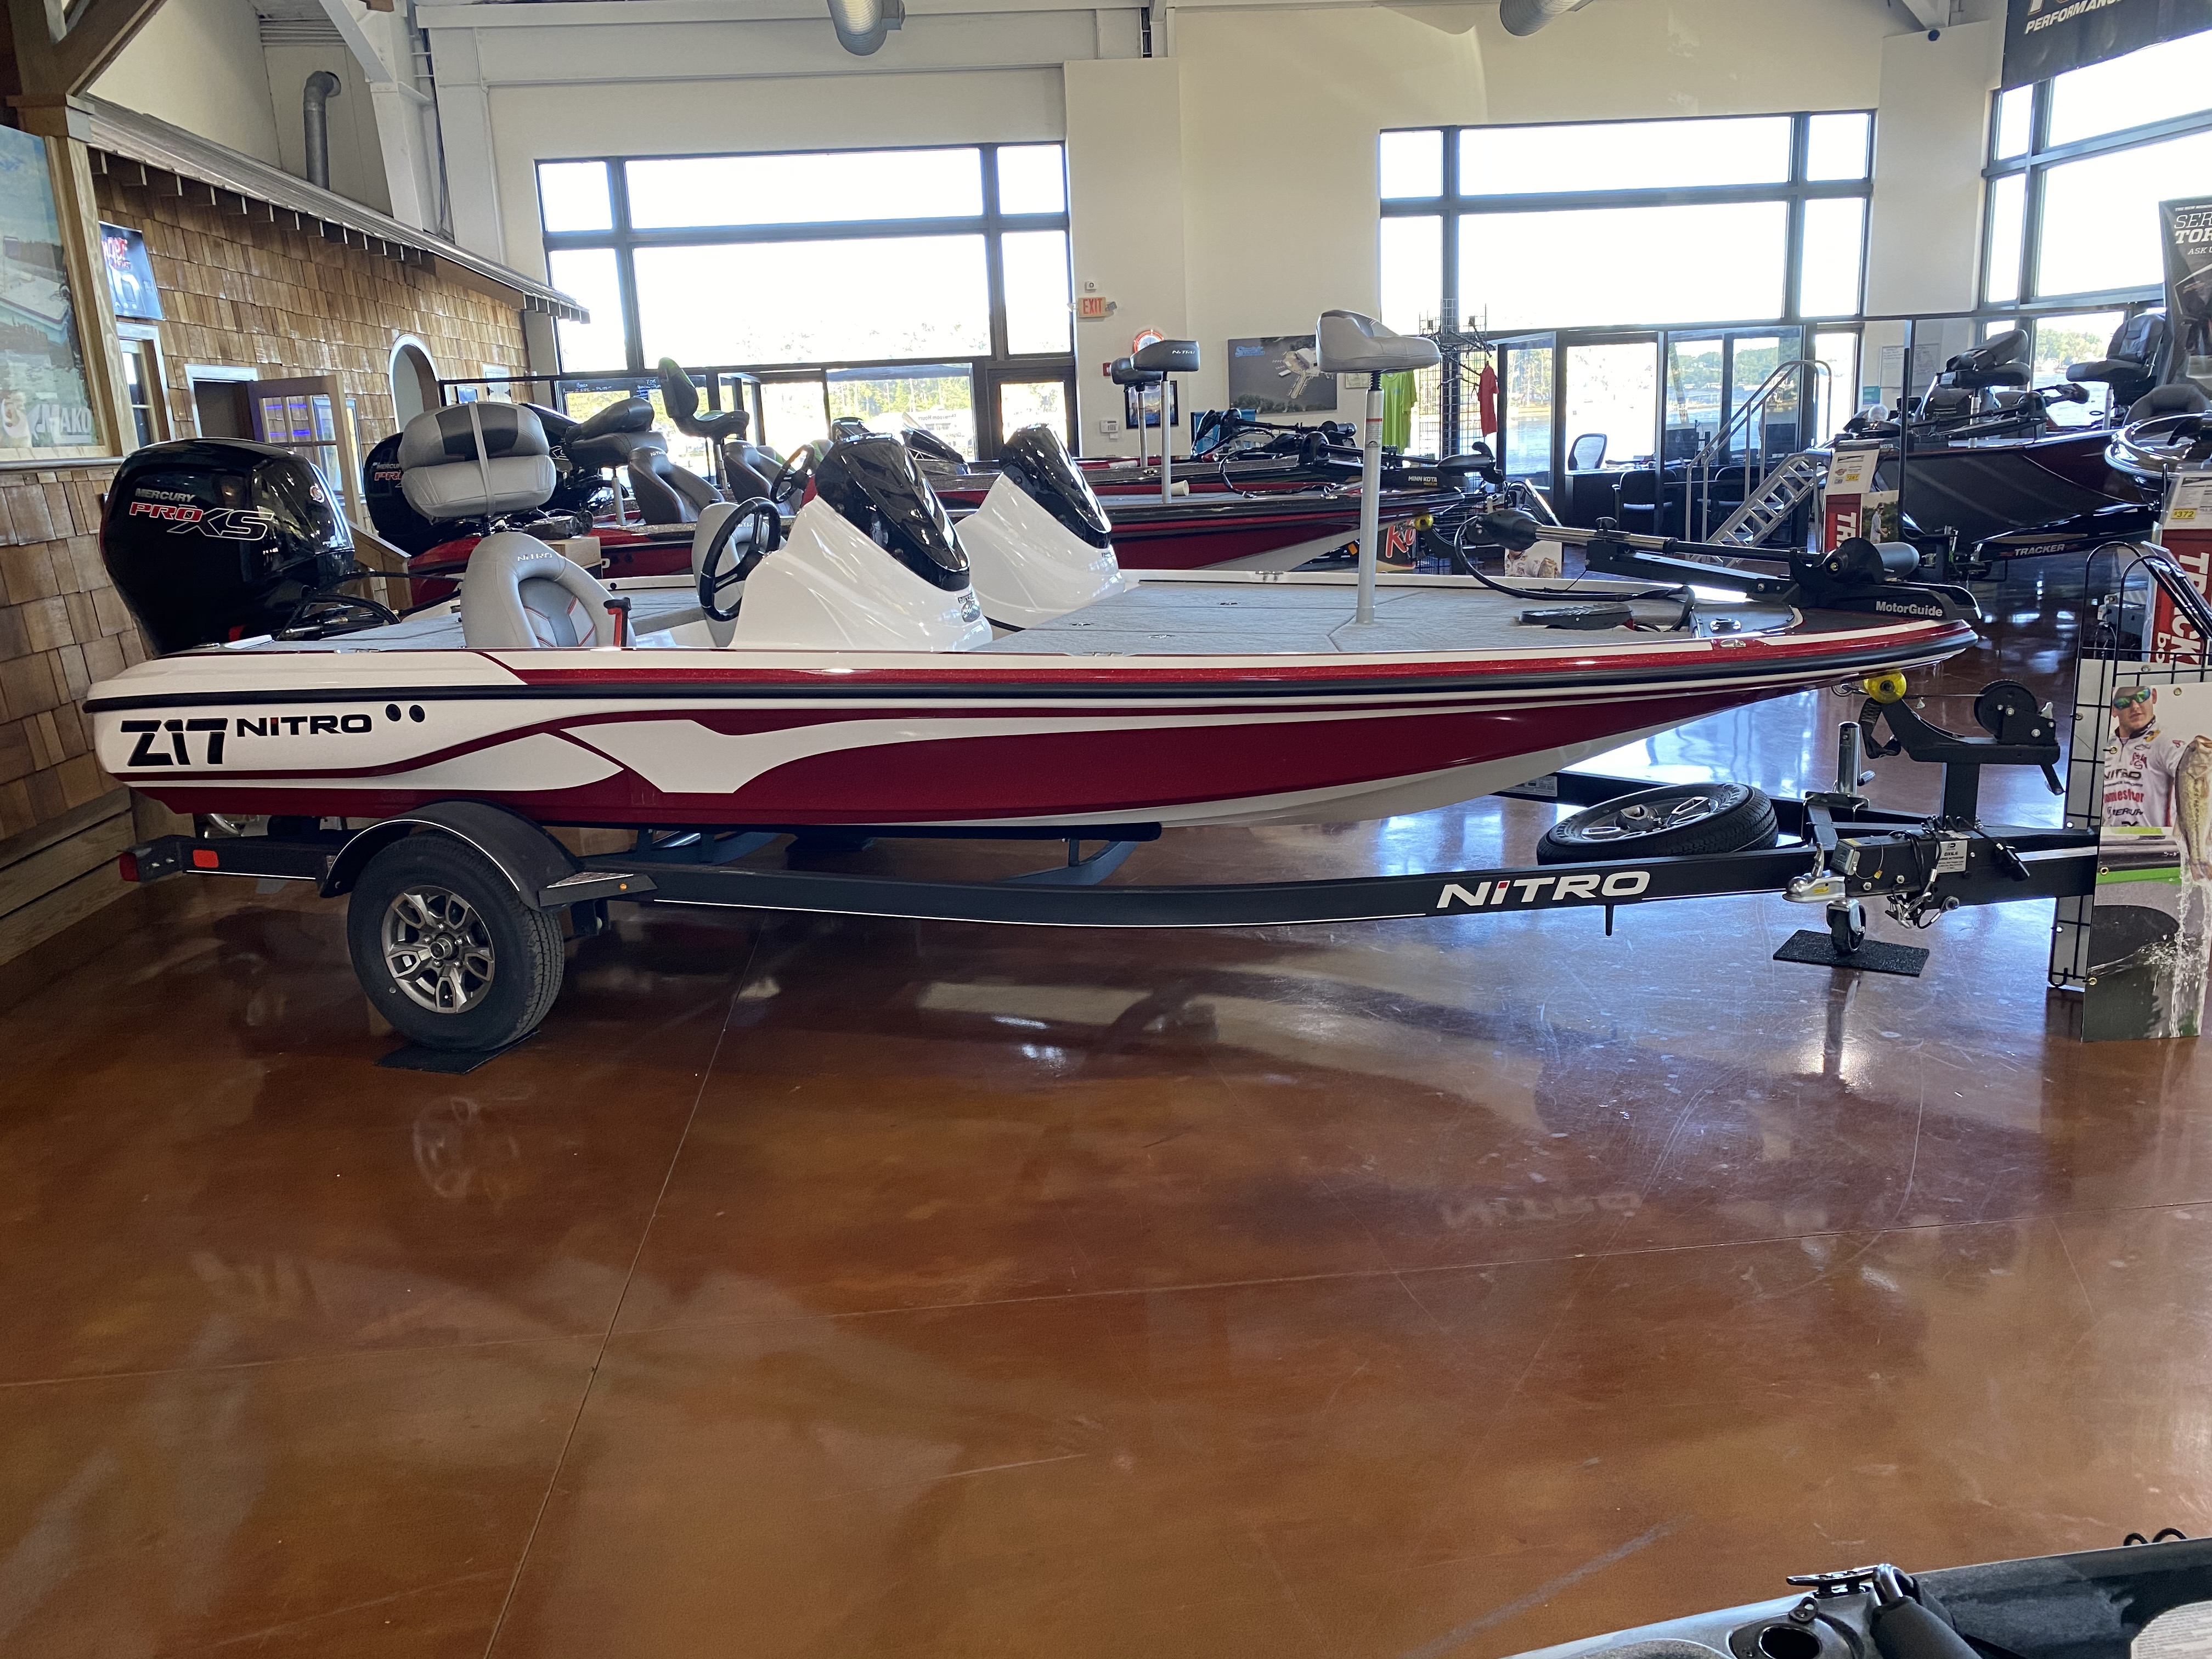 2021 Nitro boat for sale, model of the boat is Z17 & Image # 1 of 43